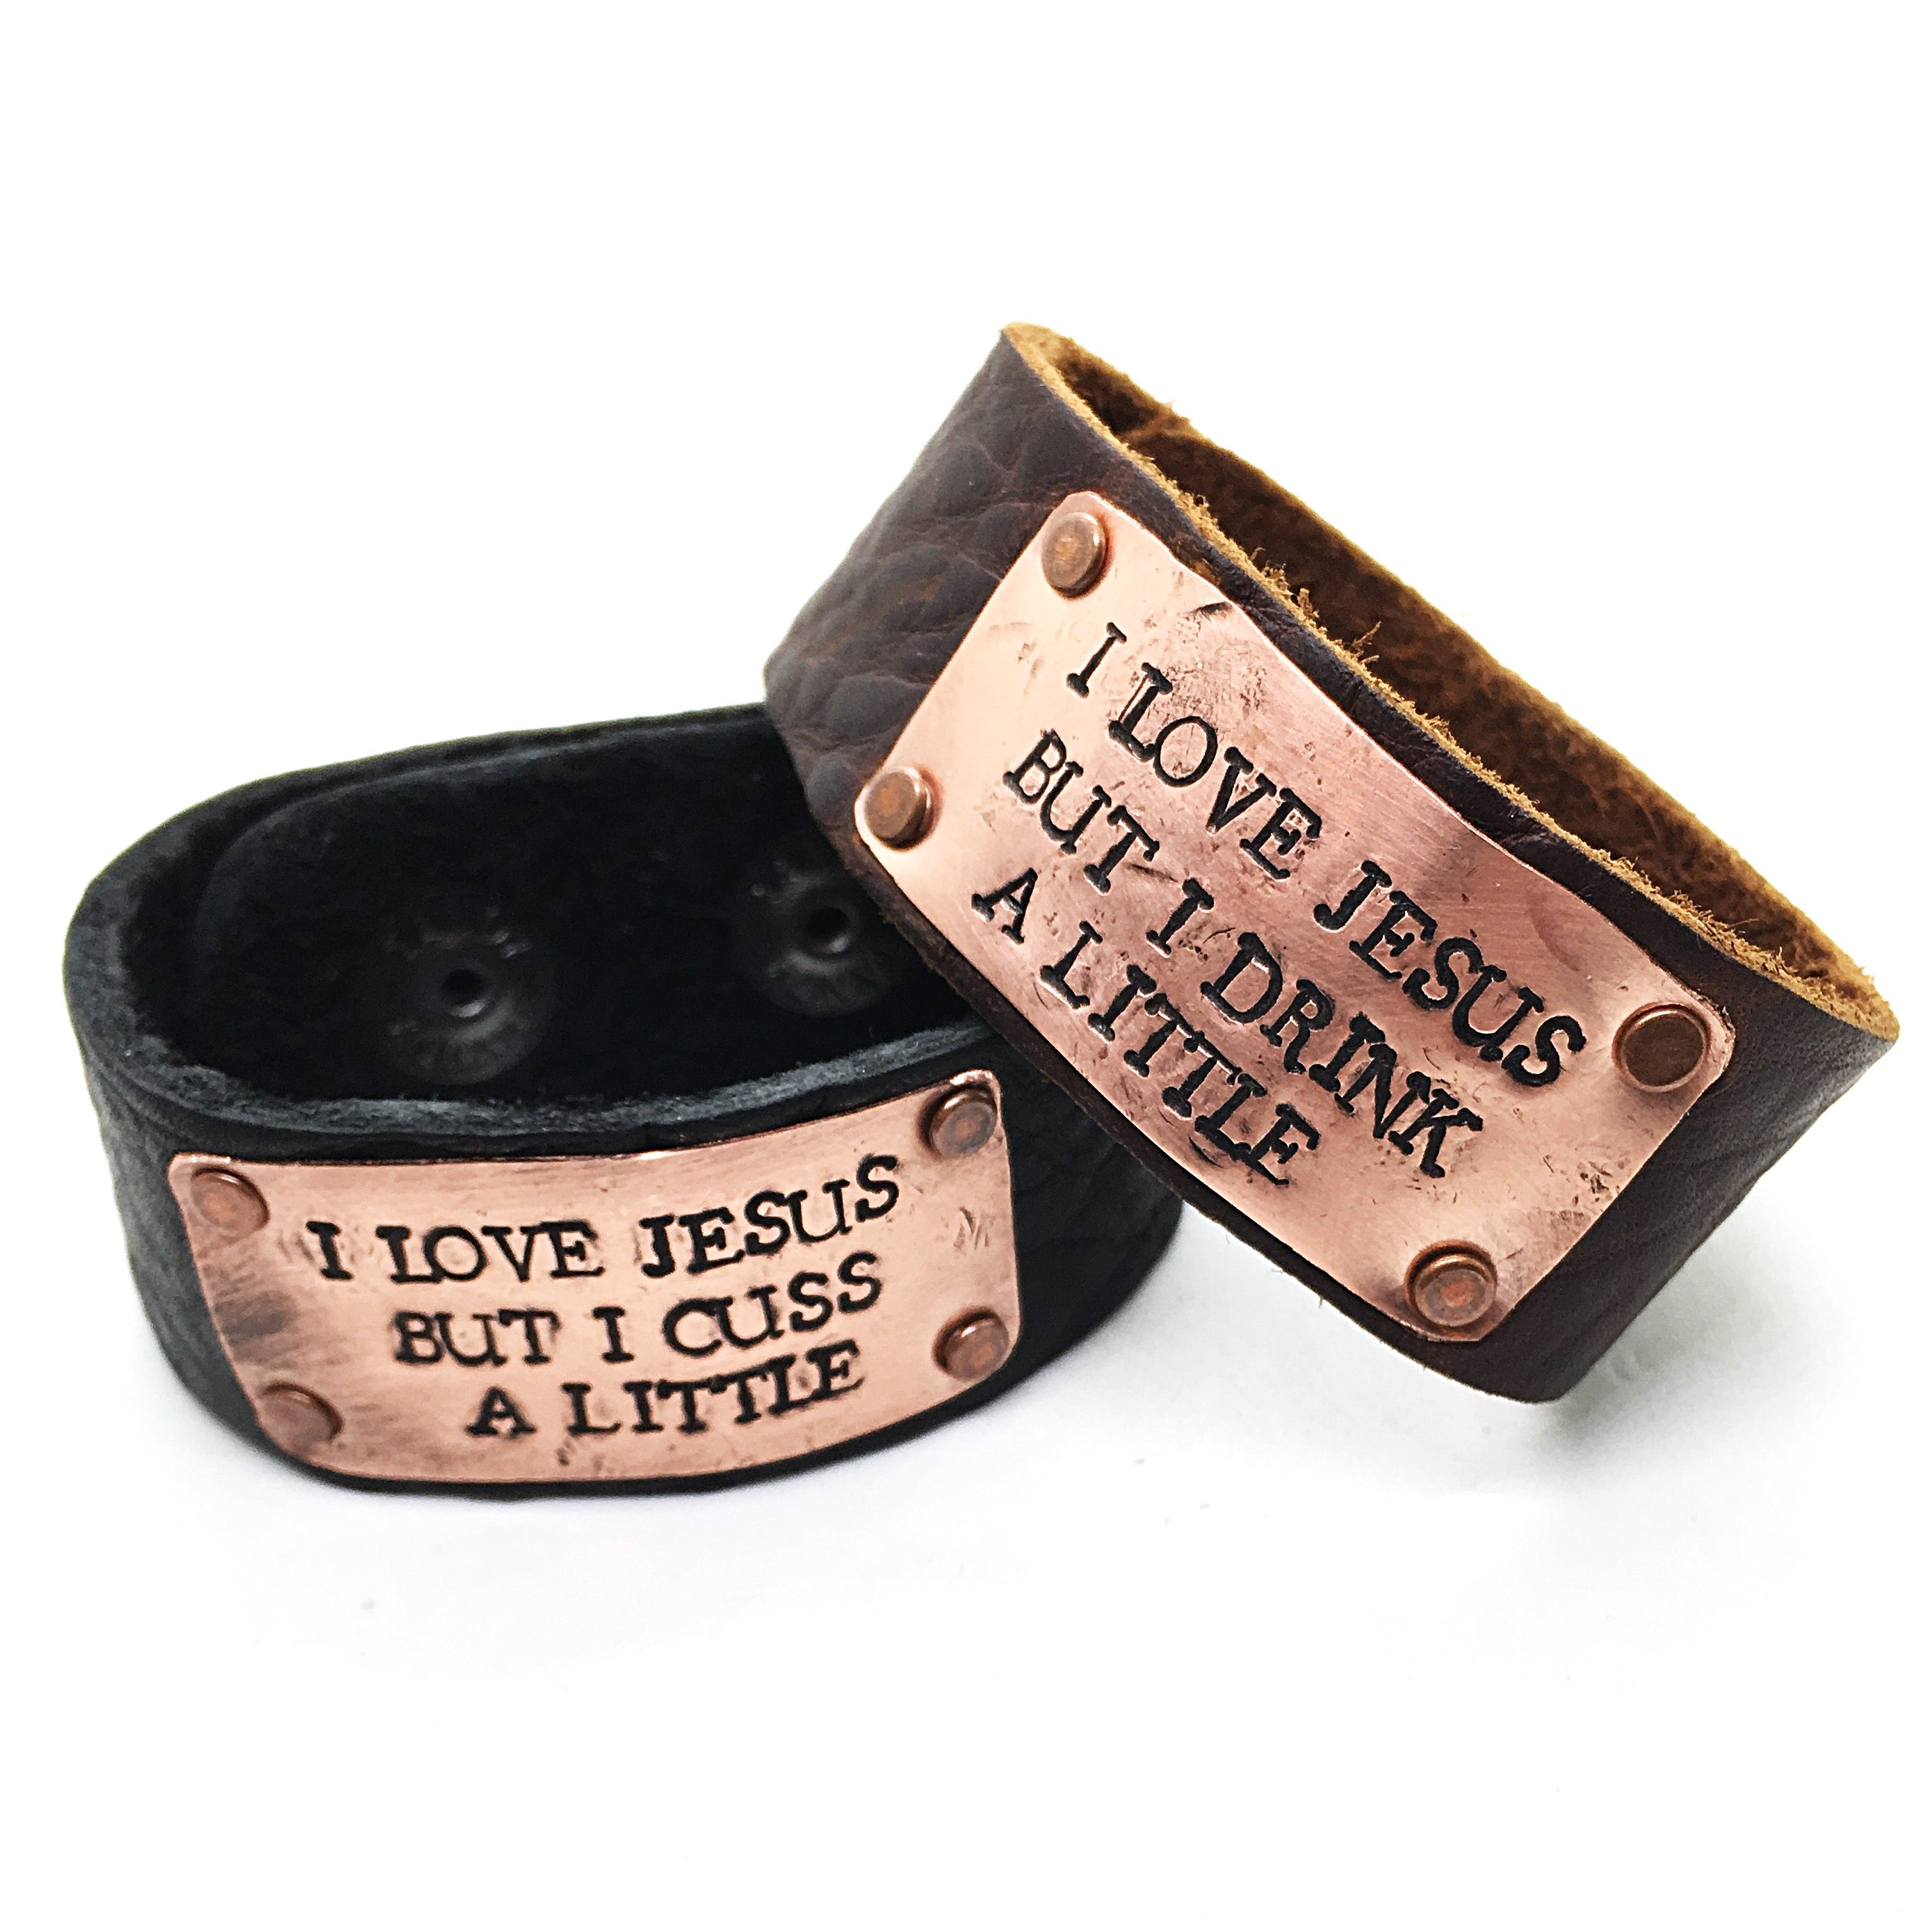 The Sinner Cuff { I Love Jesus But I Cuss A Little }